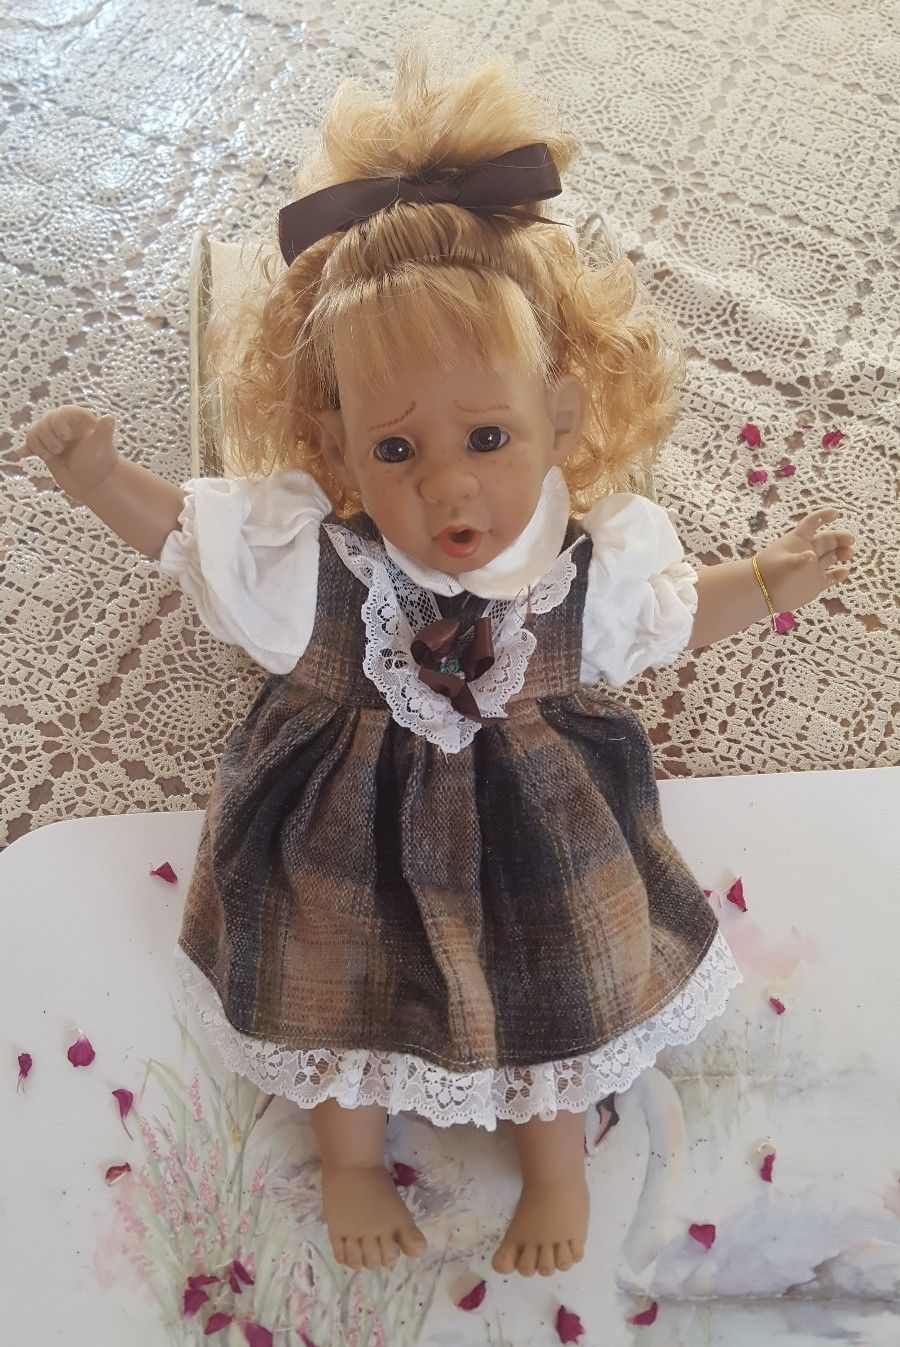 Details about Panre Vintage Spanish Doll 15 Collectable Doll #spanishdolls